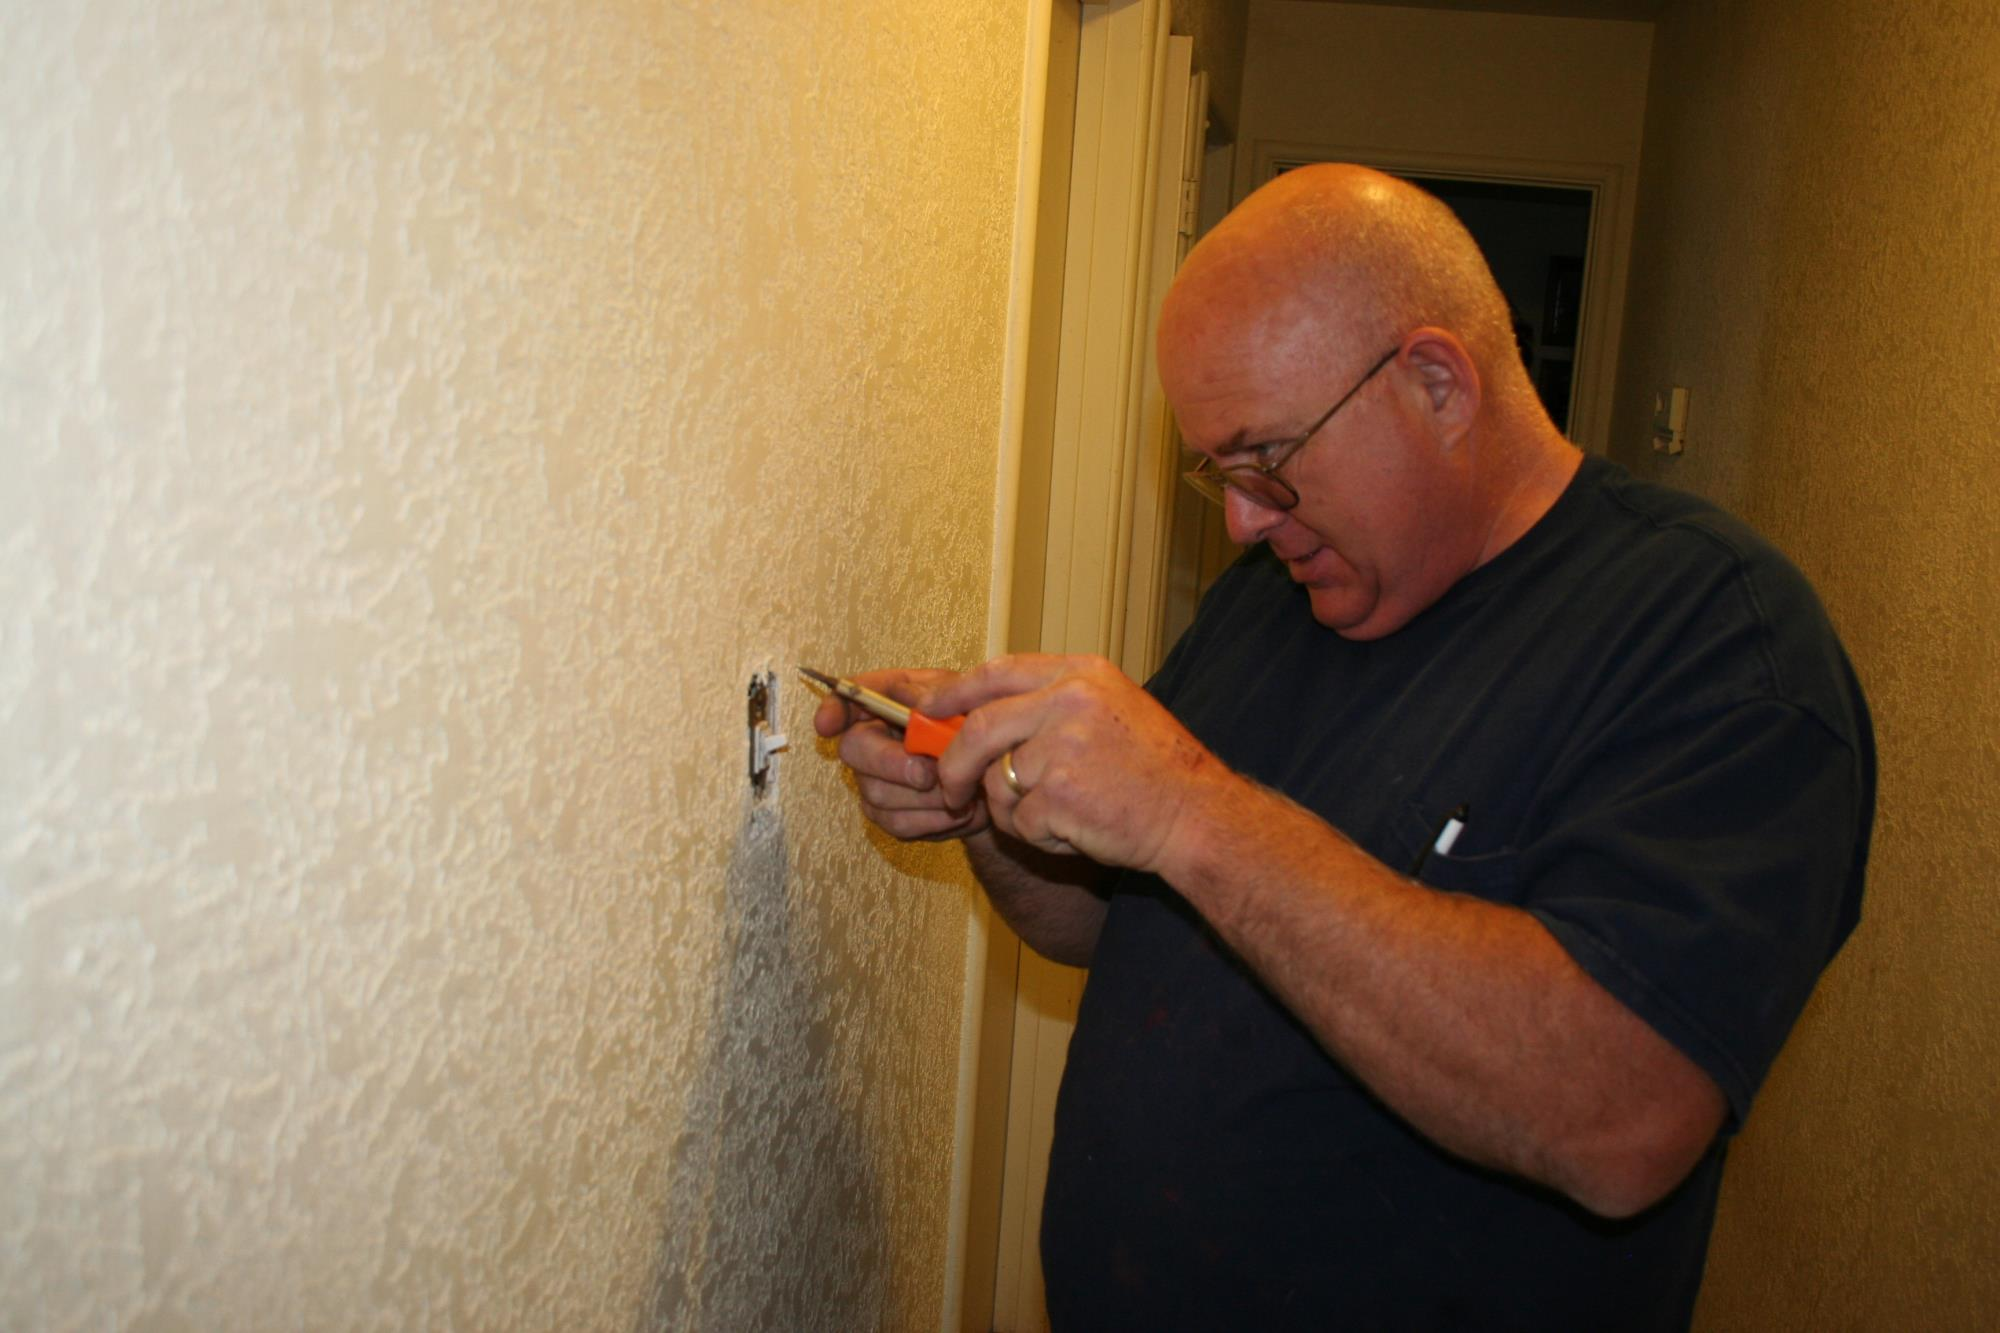 Image of man installing a new light switch in hallway